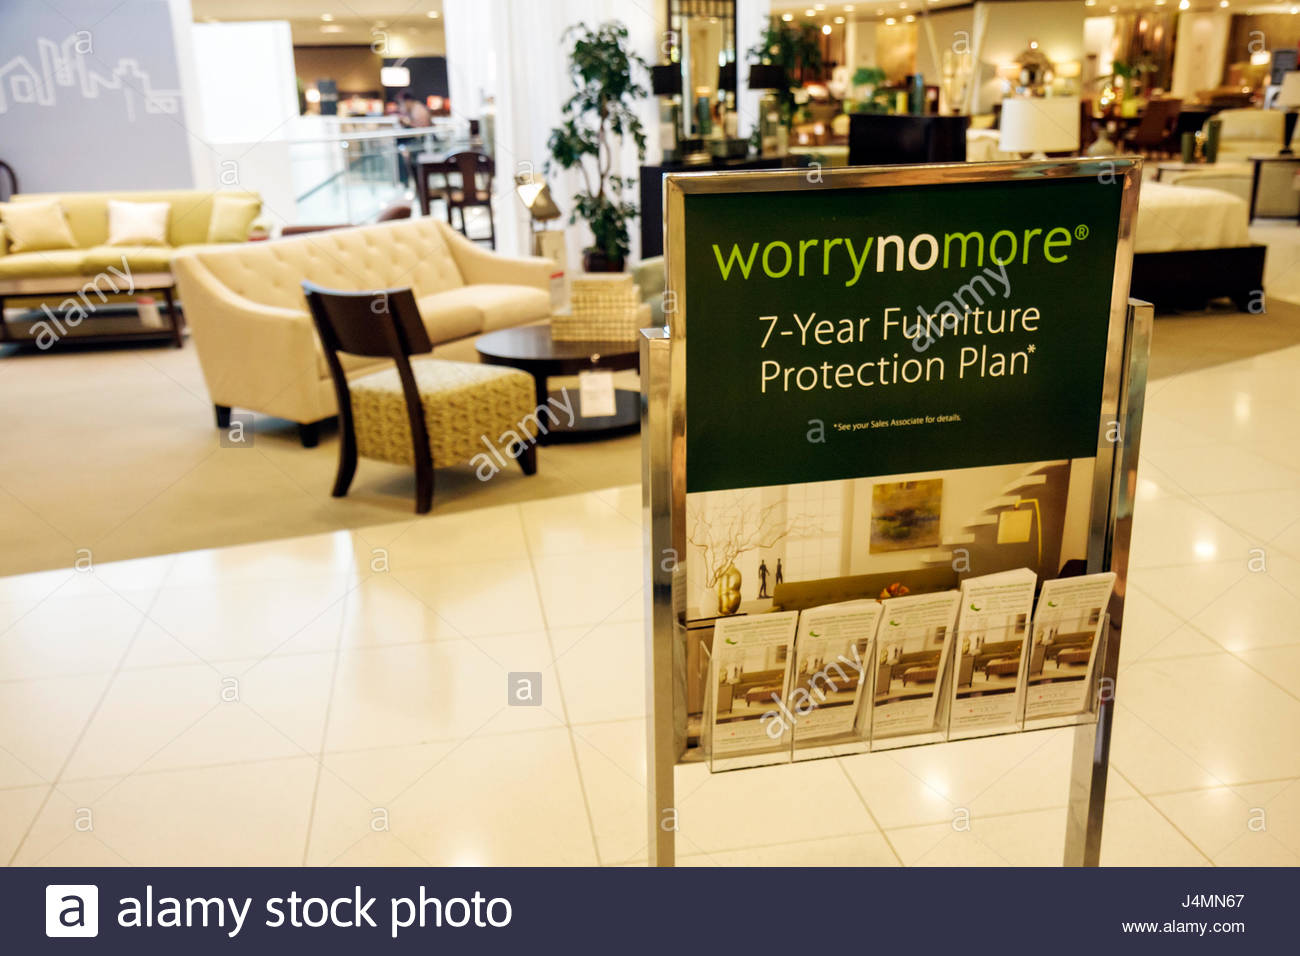 Furniture stores in miami florida - Miami Florida Aventura Mall Macy S Department Store Business Shopping Furniture Warranty Plan Sofa Sign